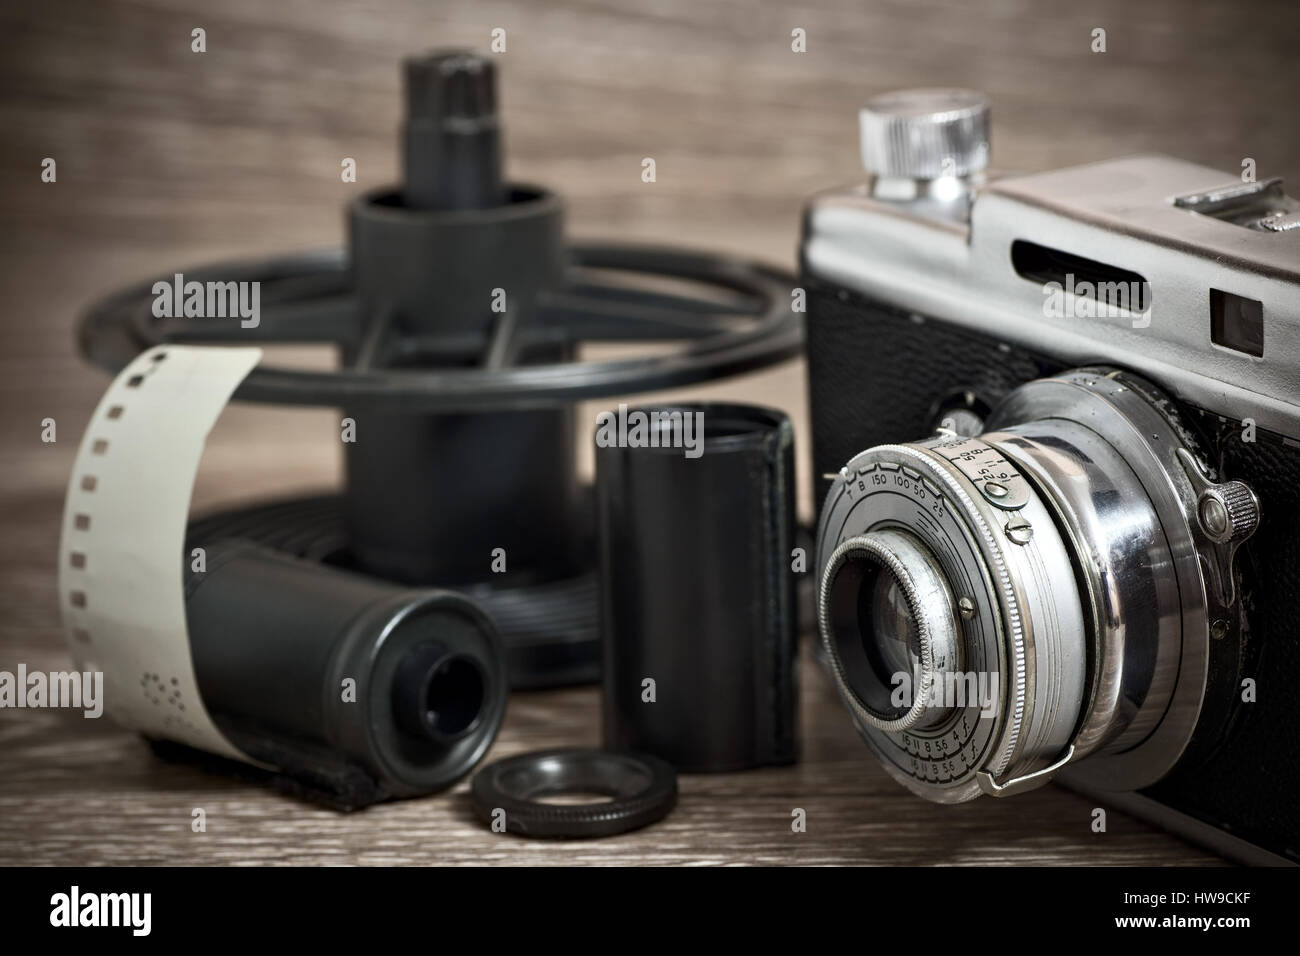 Vintage rangefinder camera with film cassettes and spool - Stock Image